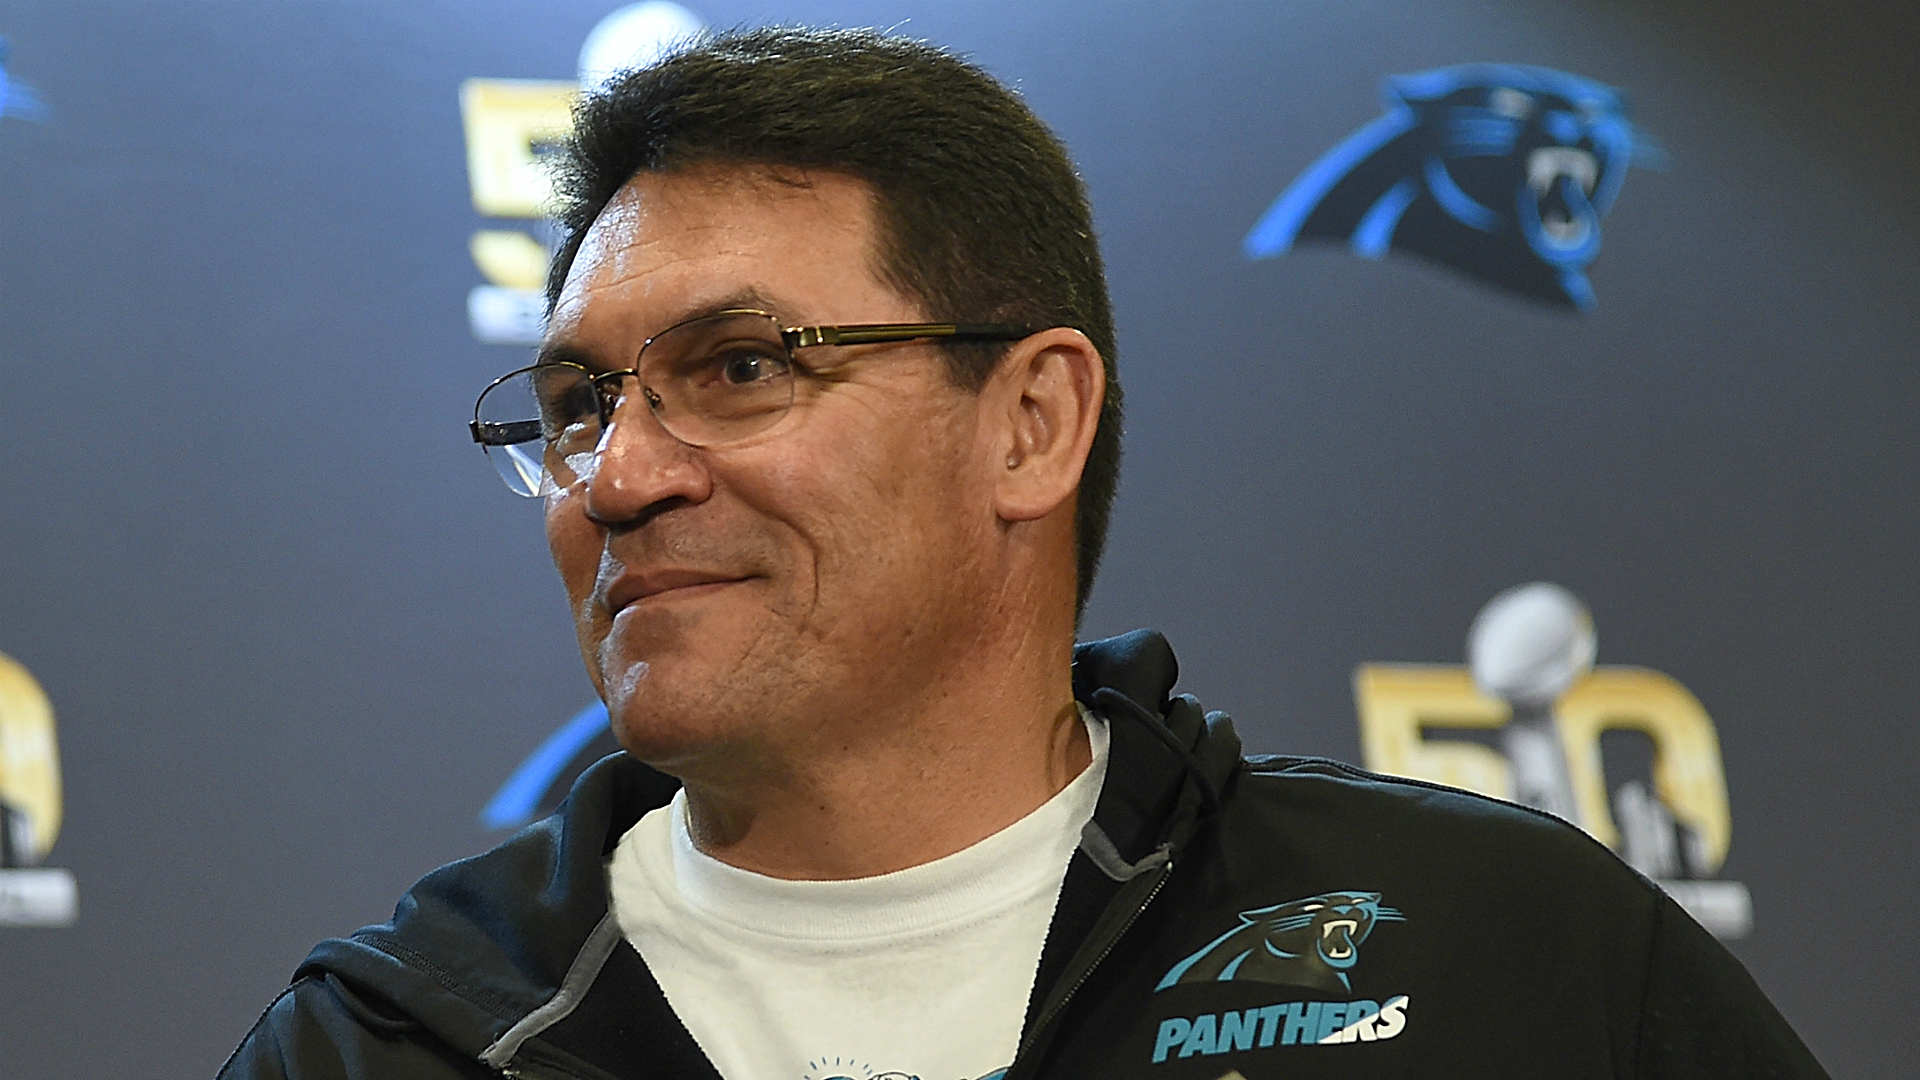 Panthers, Ron Rivera close to contract extension, report says